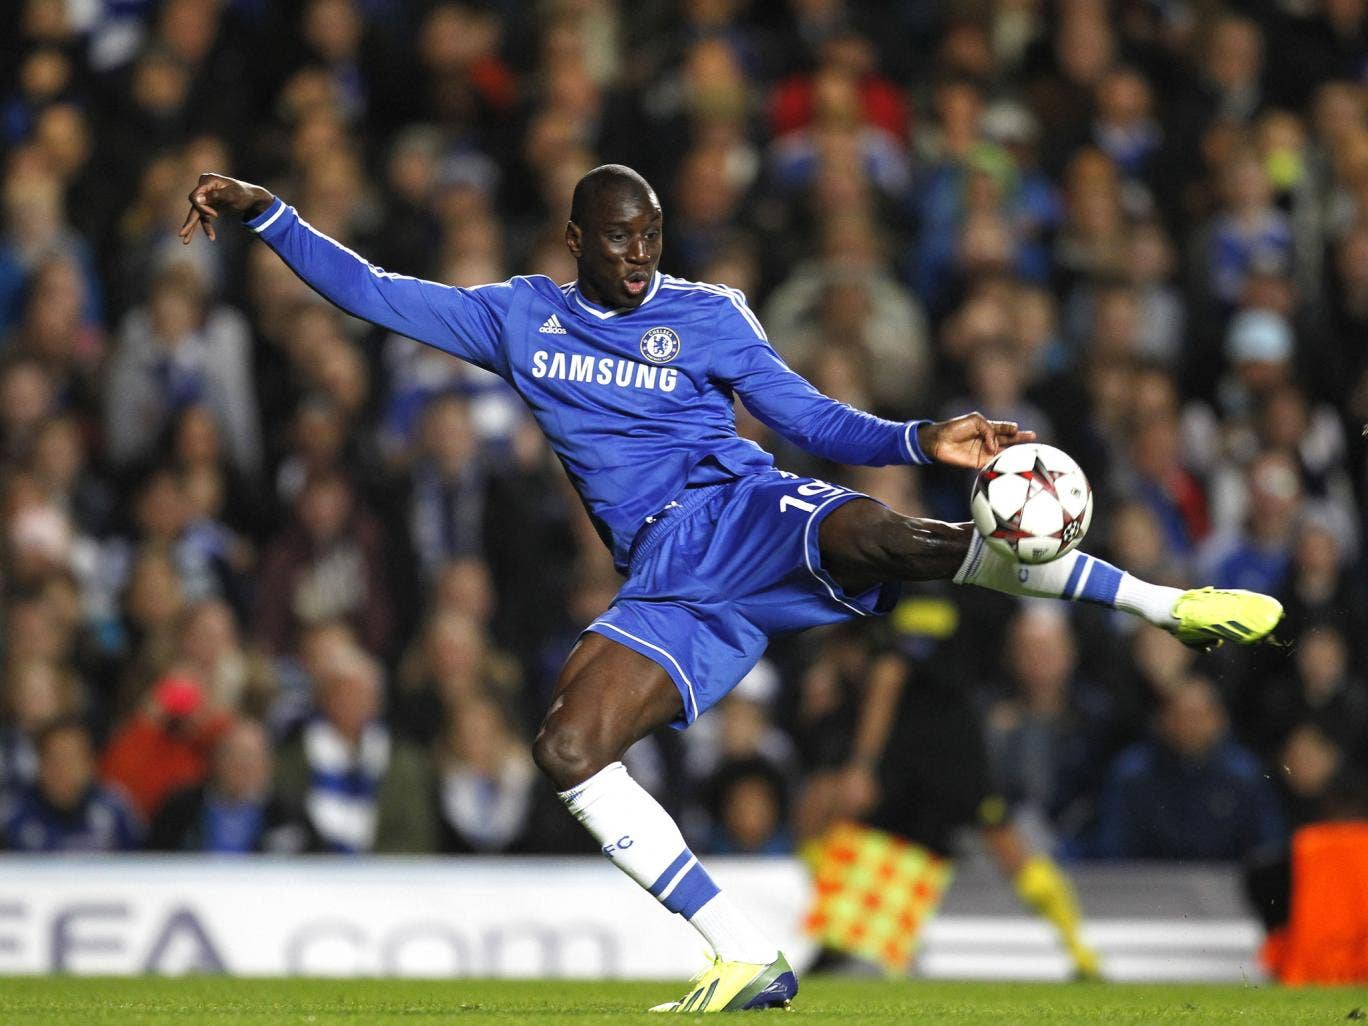 Demba Ba could leave Chelsea in January after he was linked with a move to Turkey